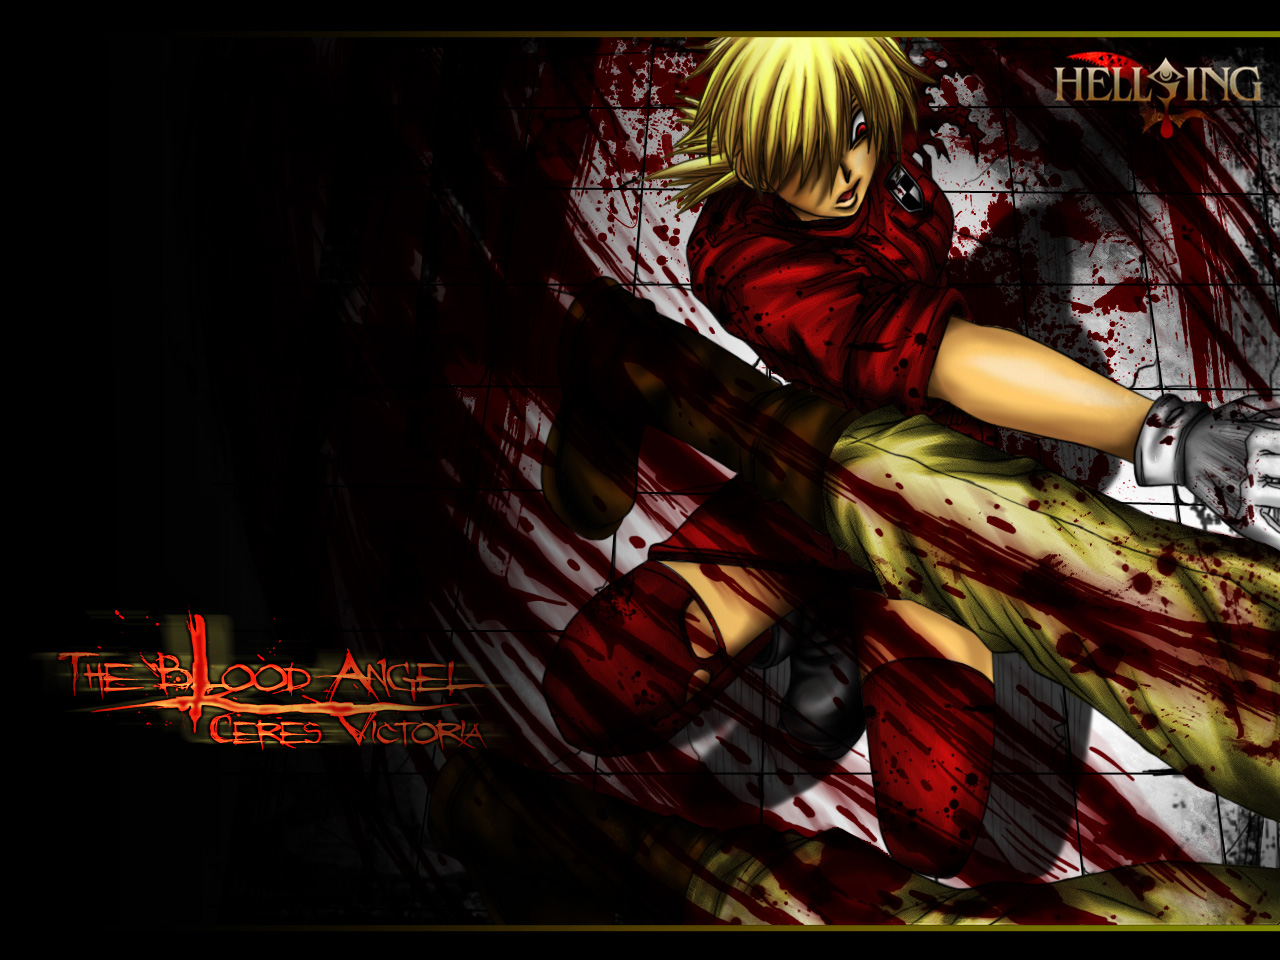 Hellsing Seras Victoria HD Wallpaper 1280x960